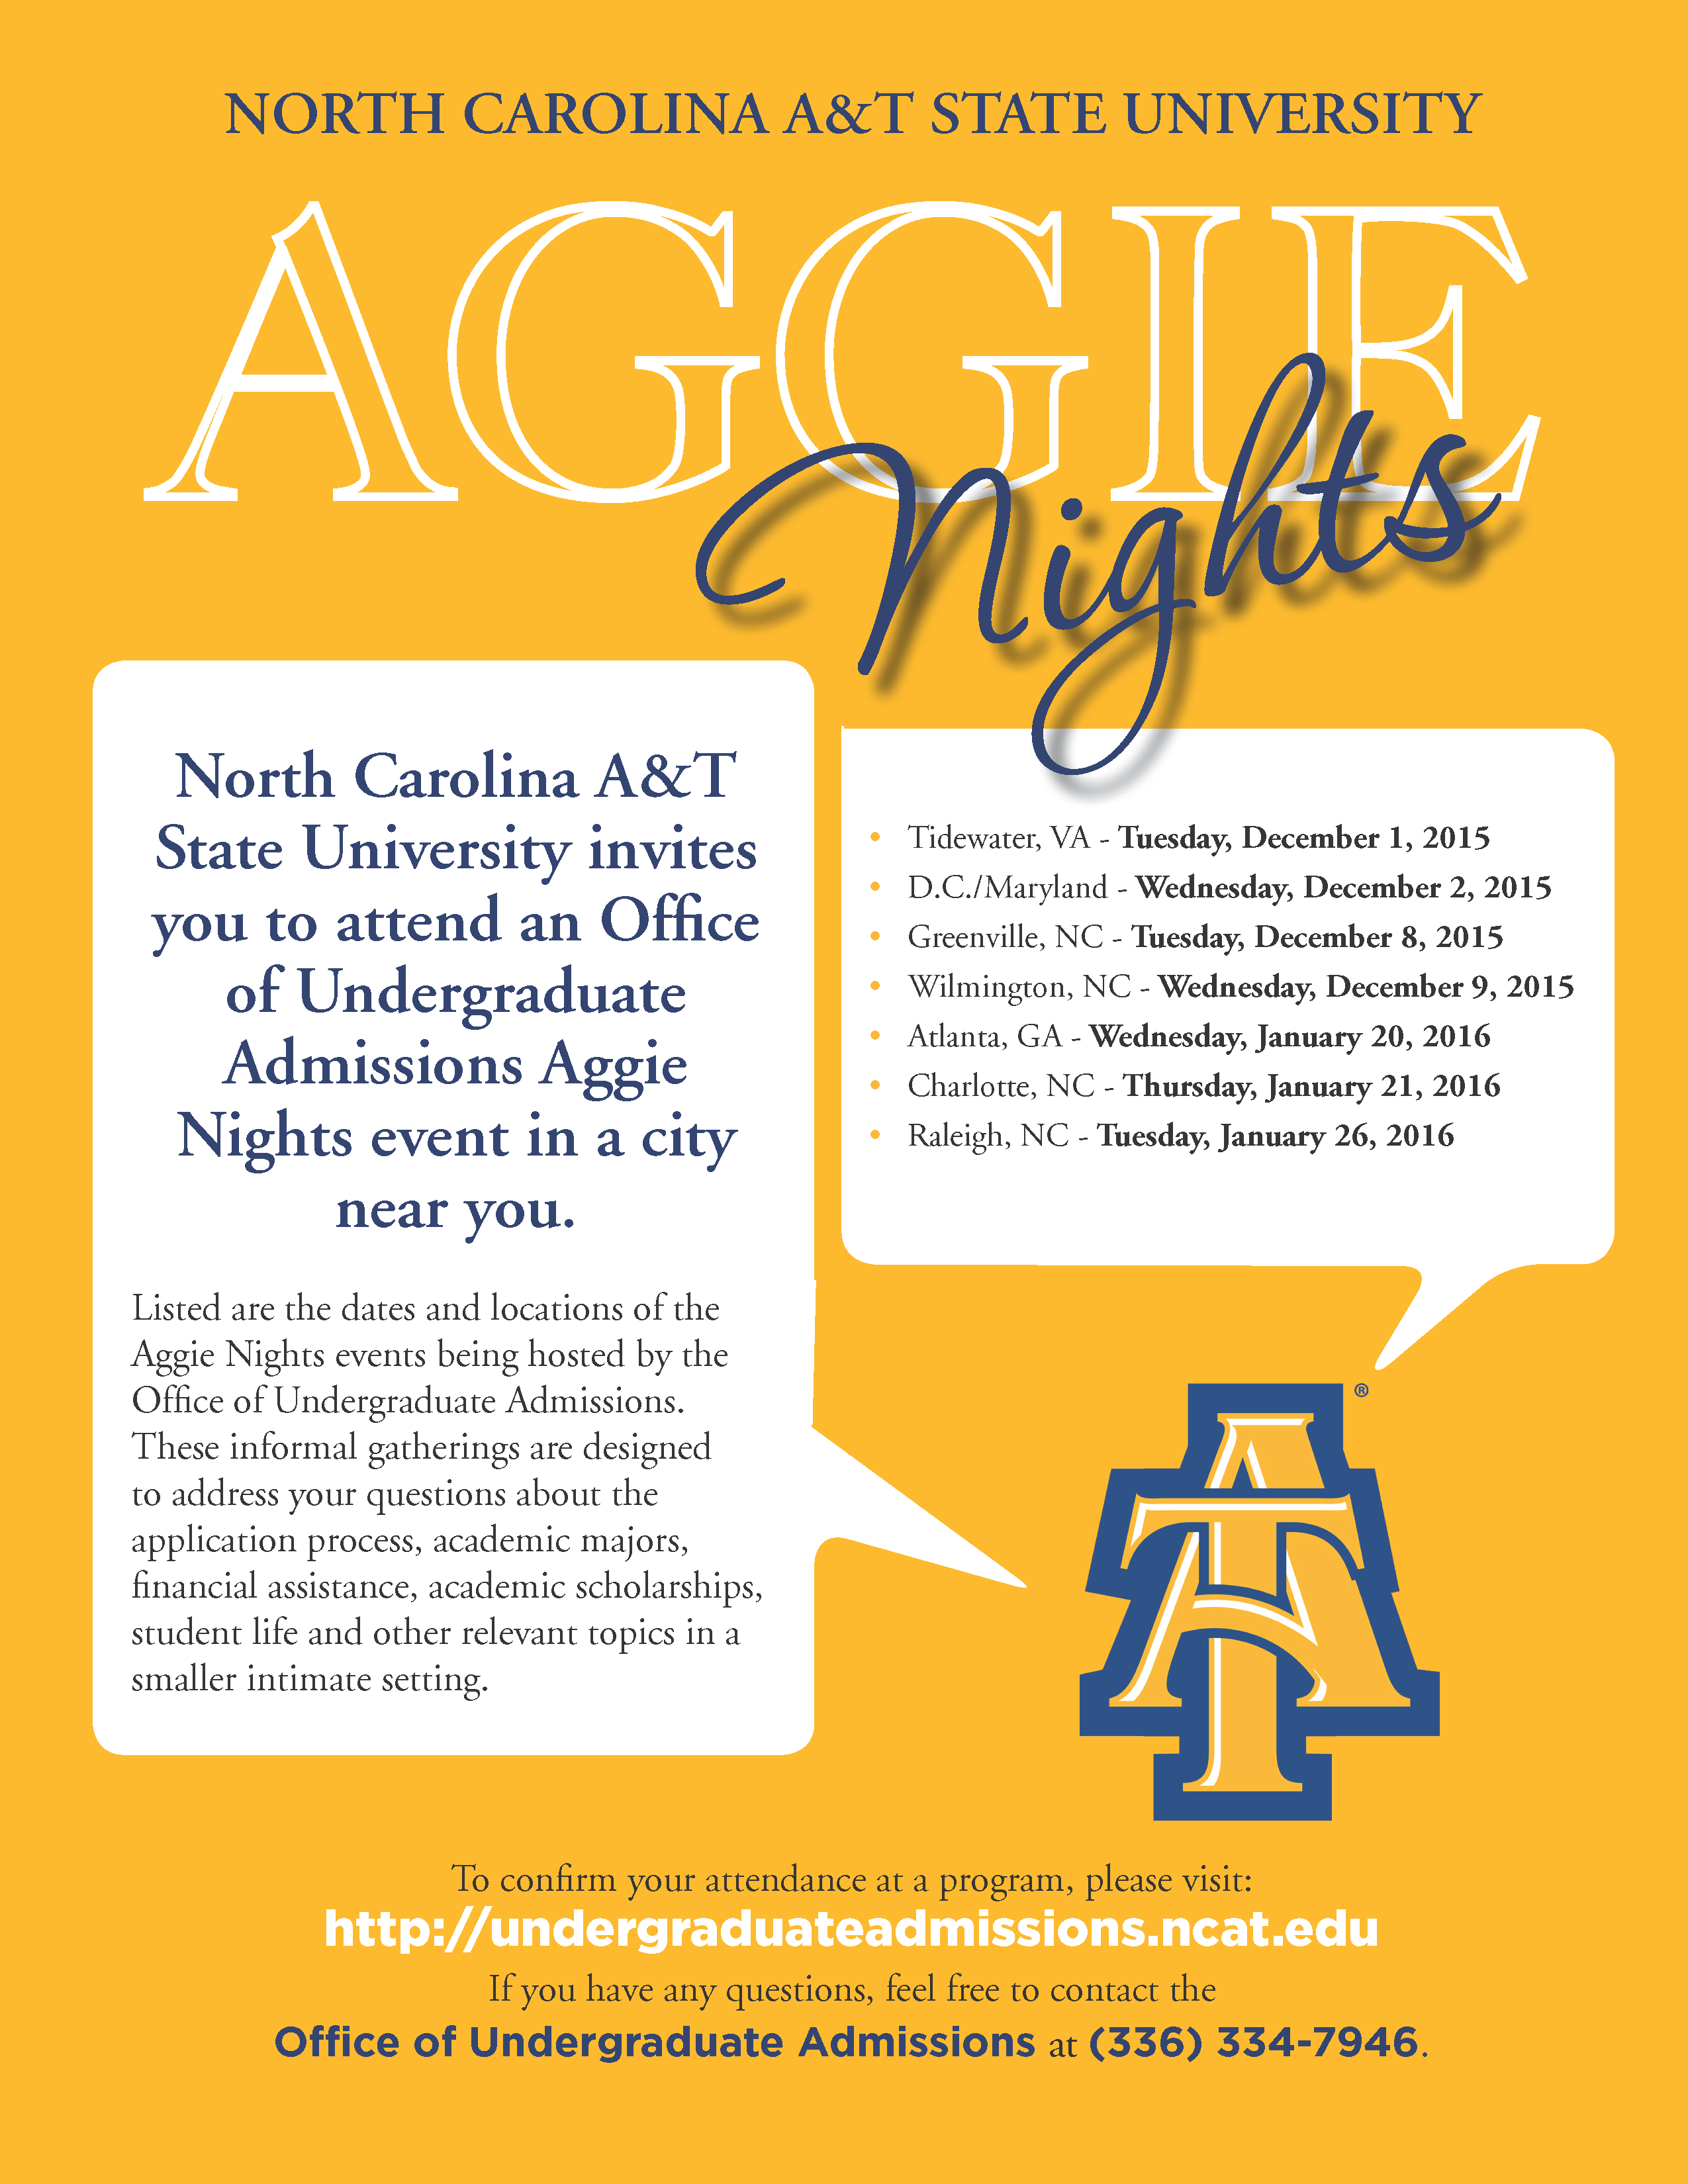 North carolina a and t state - Published 16 November 2015 At 2550 3300 In